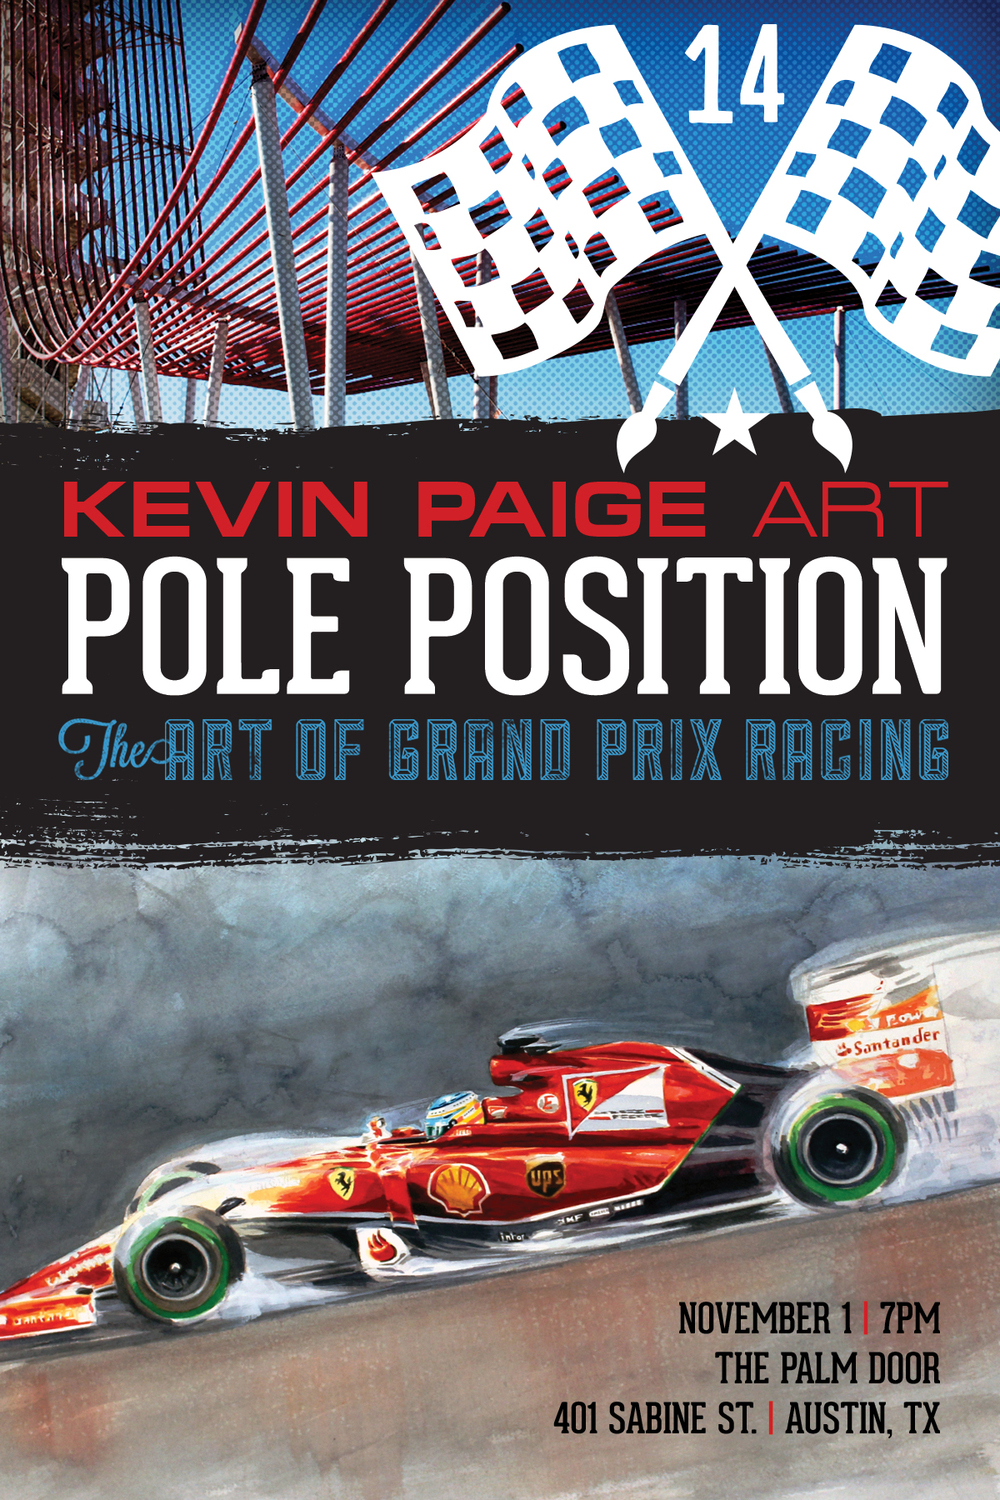 The hottest party of the US GP weekend in Austin, TX. Thanks for making Pole Position one of the best F1 parties in town - two years in a row! We can't wait to see y'all for Pole Position 2014!